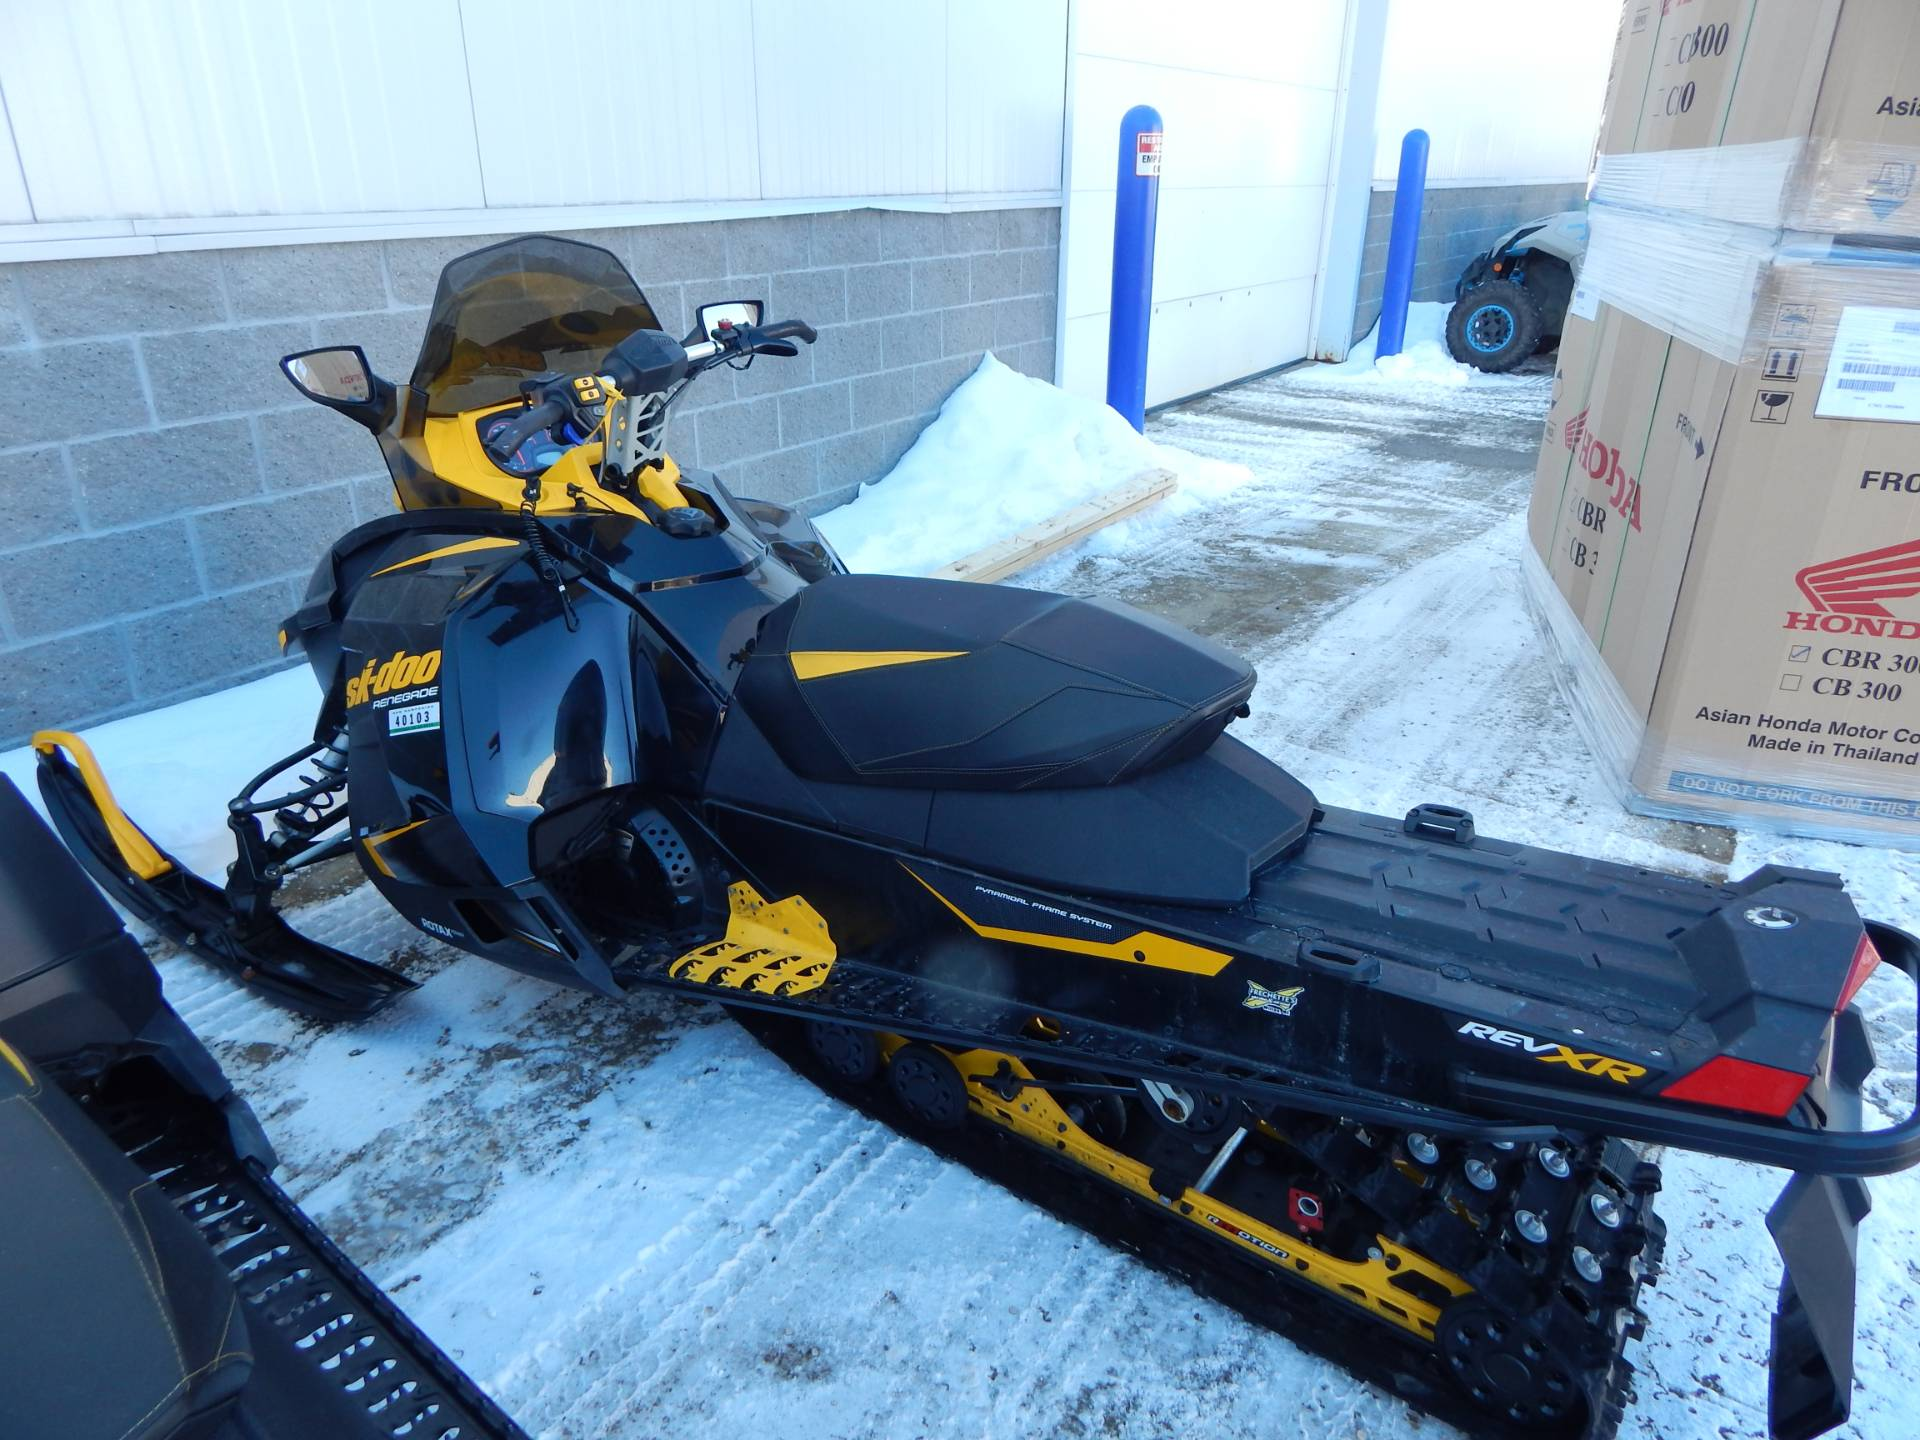 2014 Ski-Doo Renegade® X® 4-TEC® 1200 in Concord, New Hampshire - Photo 5